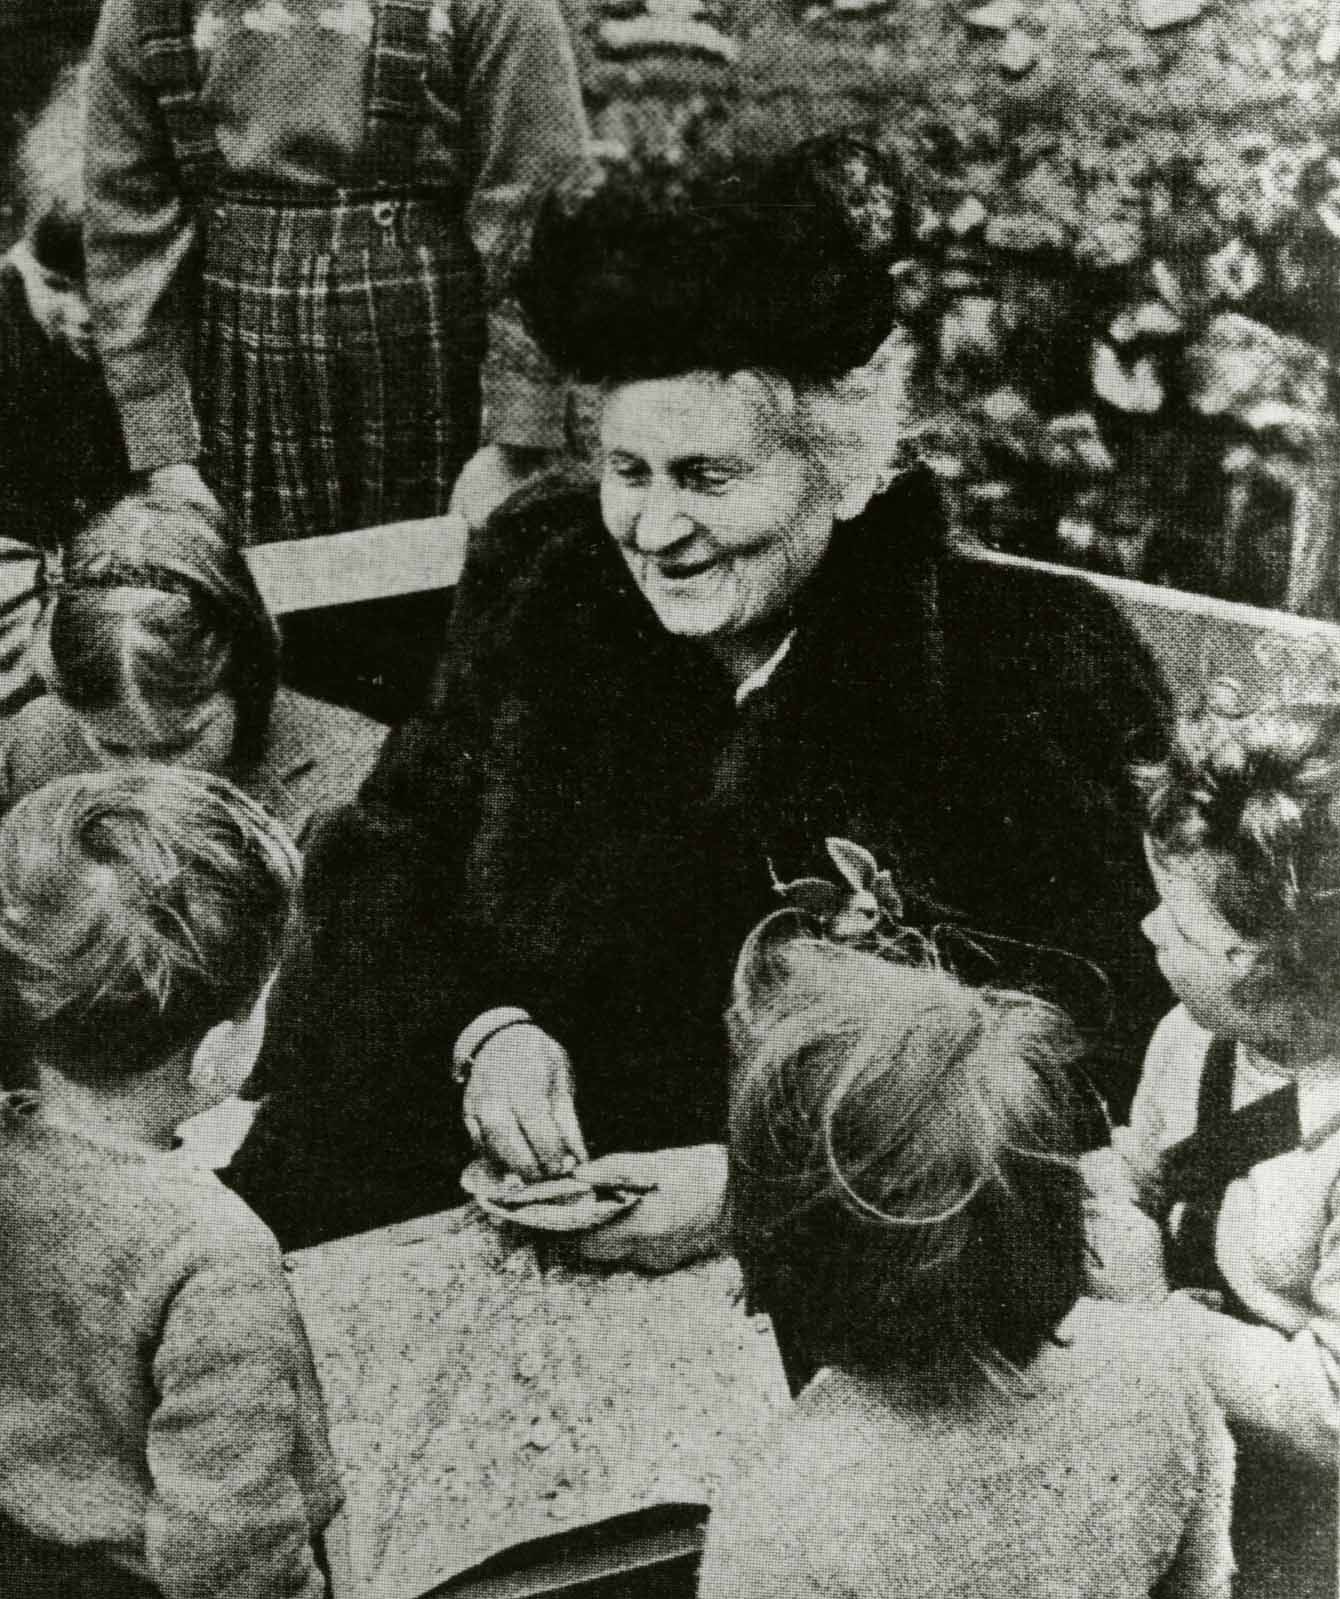 life and work of maria montessori Maria montessori was born on august 31, 1870, in the provincial town of chiaravalle, italy, to middle-class, well-educated parents at the time that montessori was growing up, italy held.